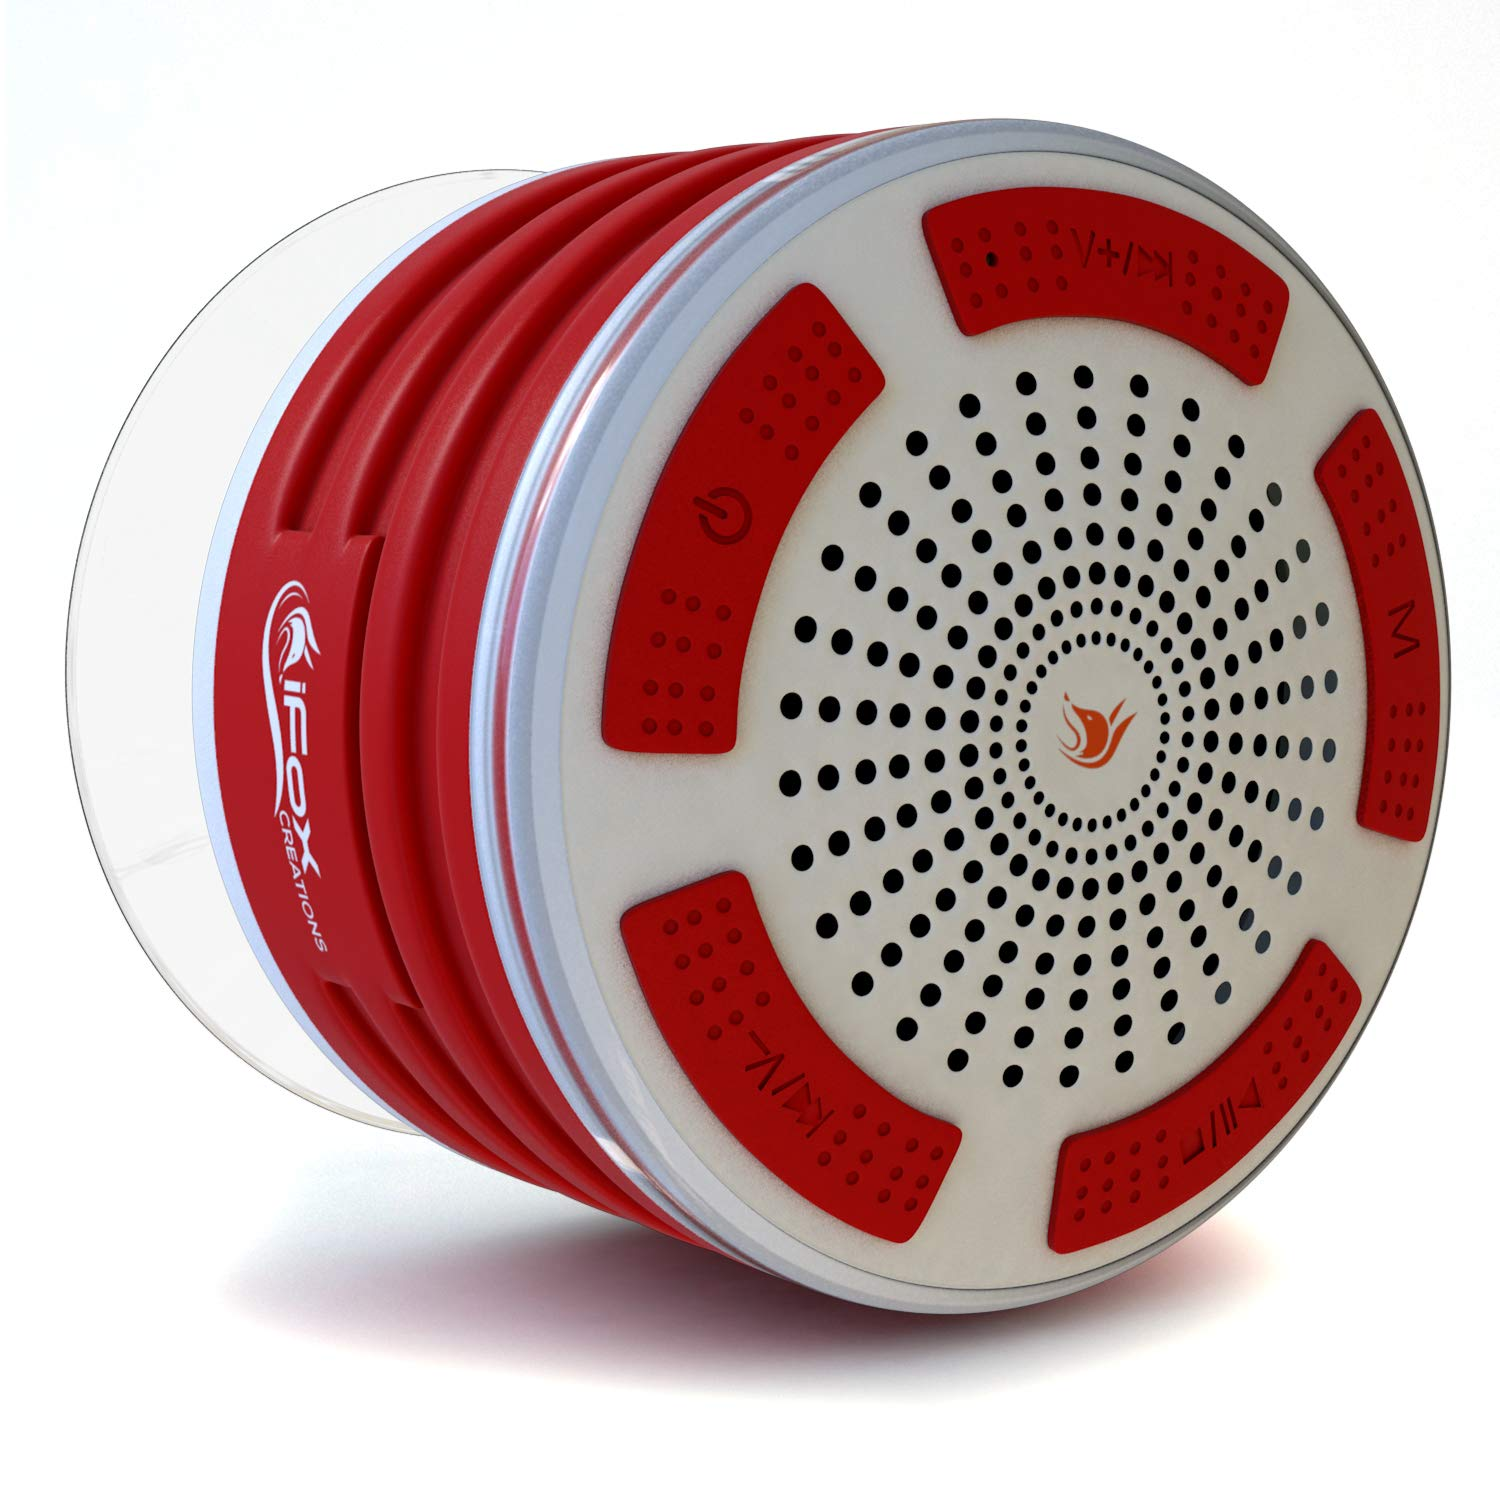 iFox iF013 Bluetooth Shower Speaker - 100% Waterproof Shower Radio. Wireless It Pairs to All Bluetooth Devices - Phones, Tablets, Computer, Games (Red & White)